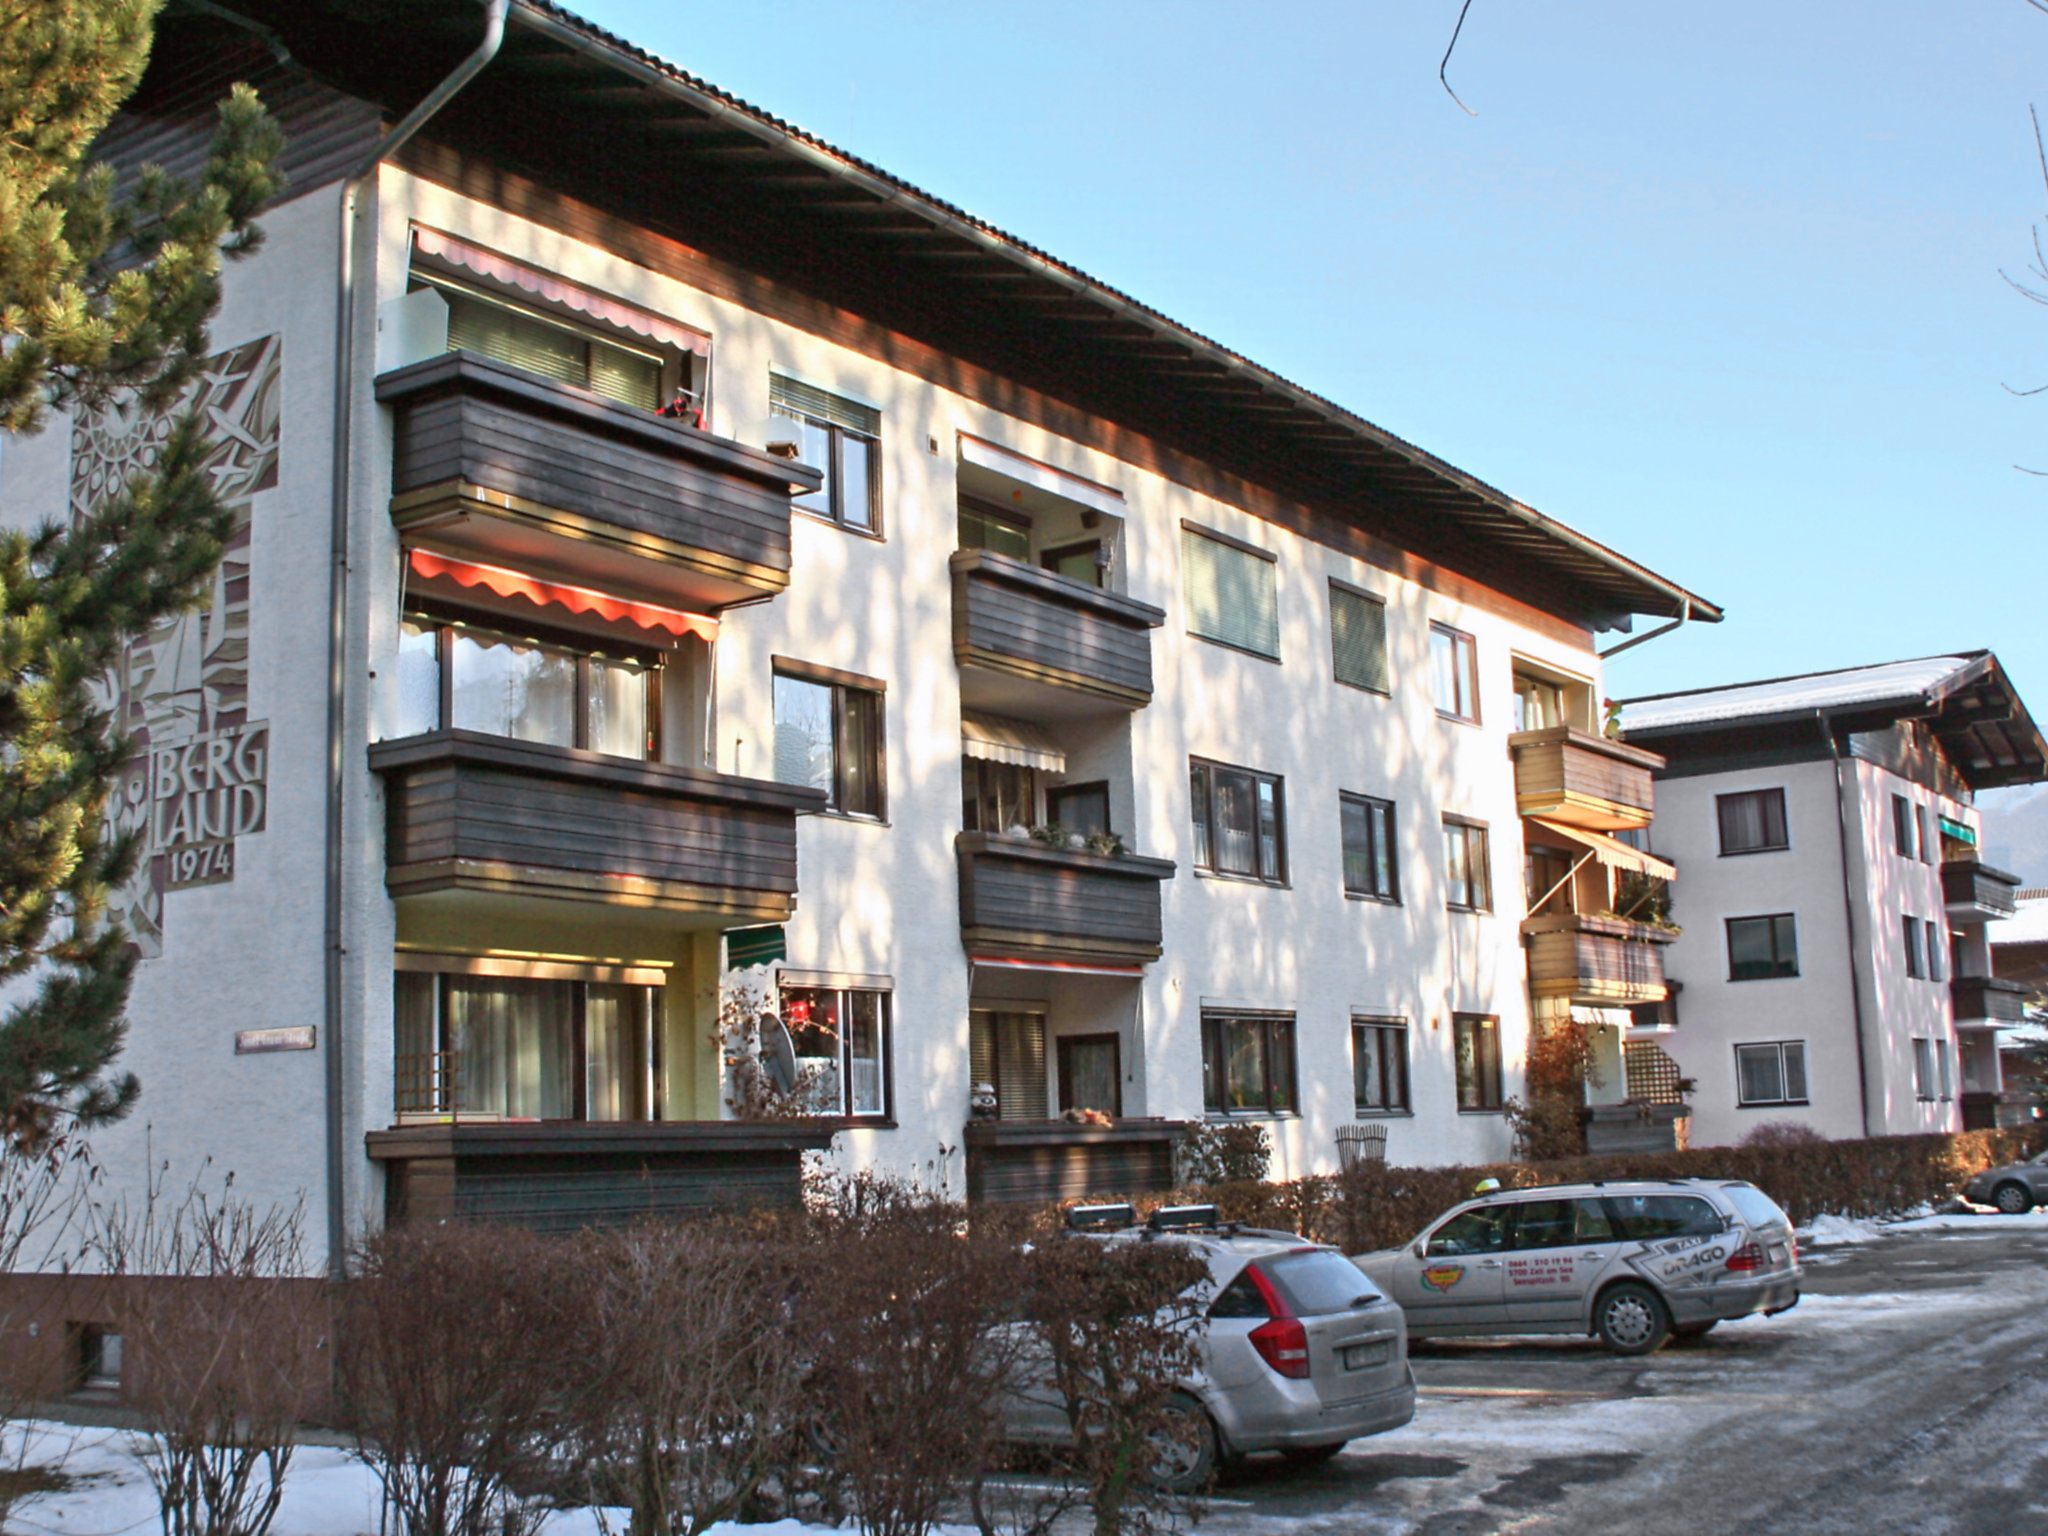 Apartment haus grani zell am see for Apartment haus